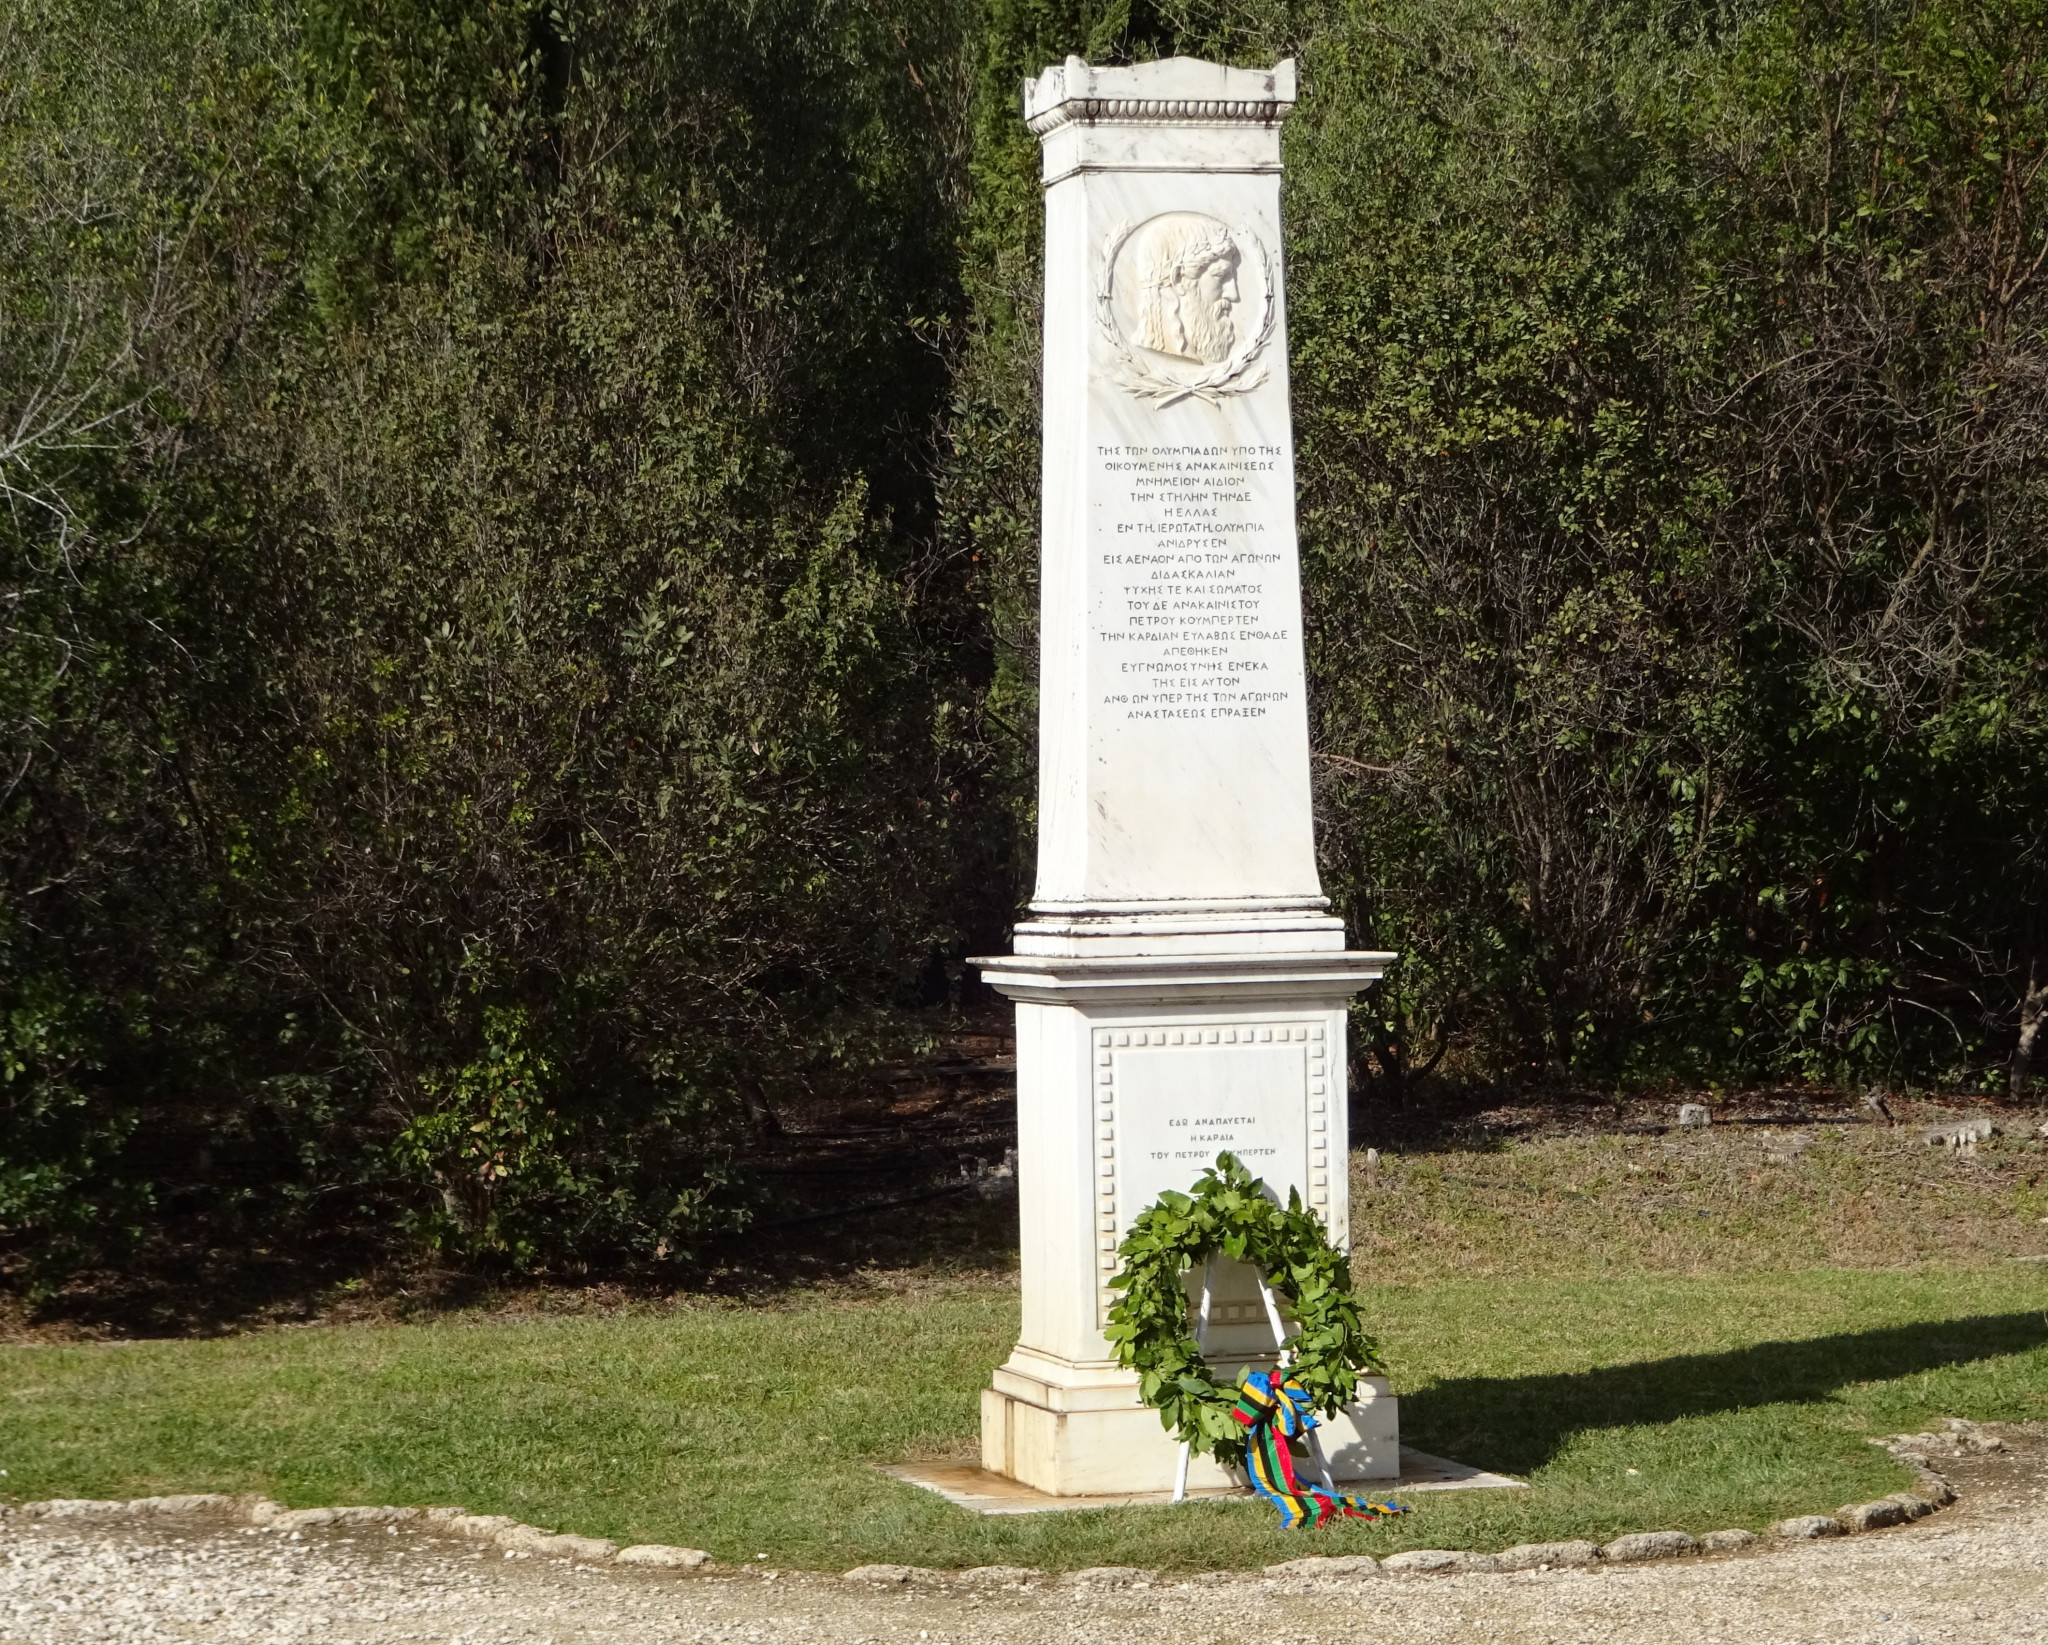 A wreath is laid at the Coubertin monument when the IOC visits Olympia ©Philip Barker